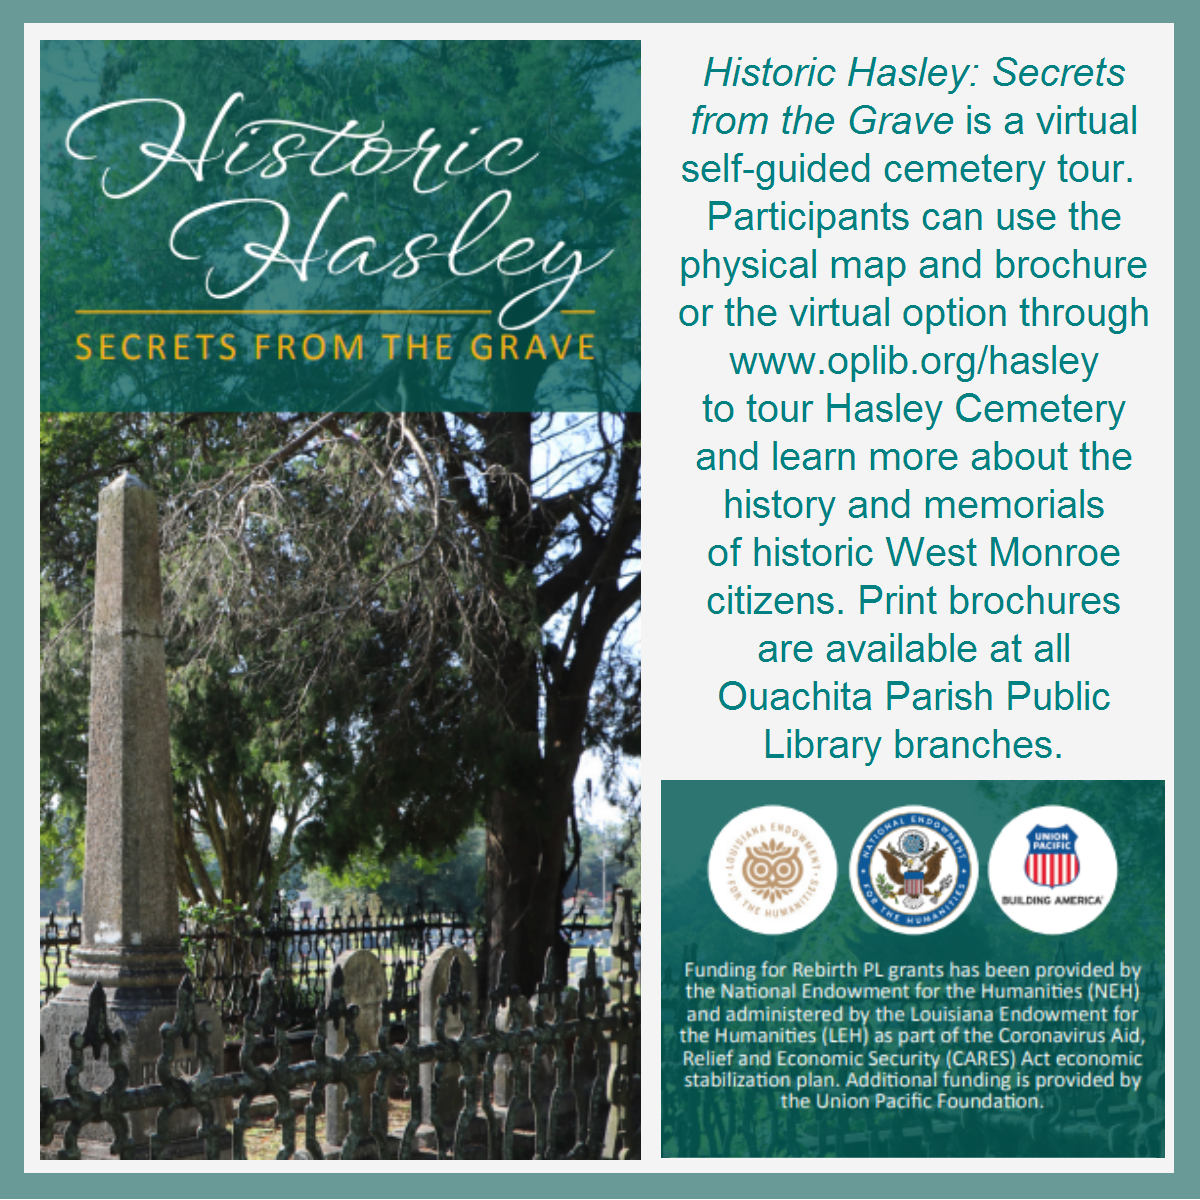 Image from the Hasley Cemetery Tour Brochure